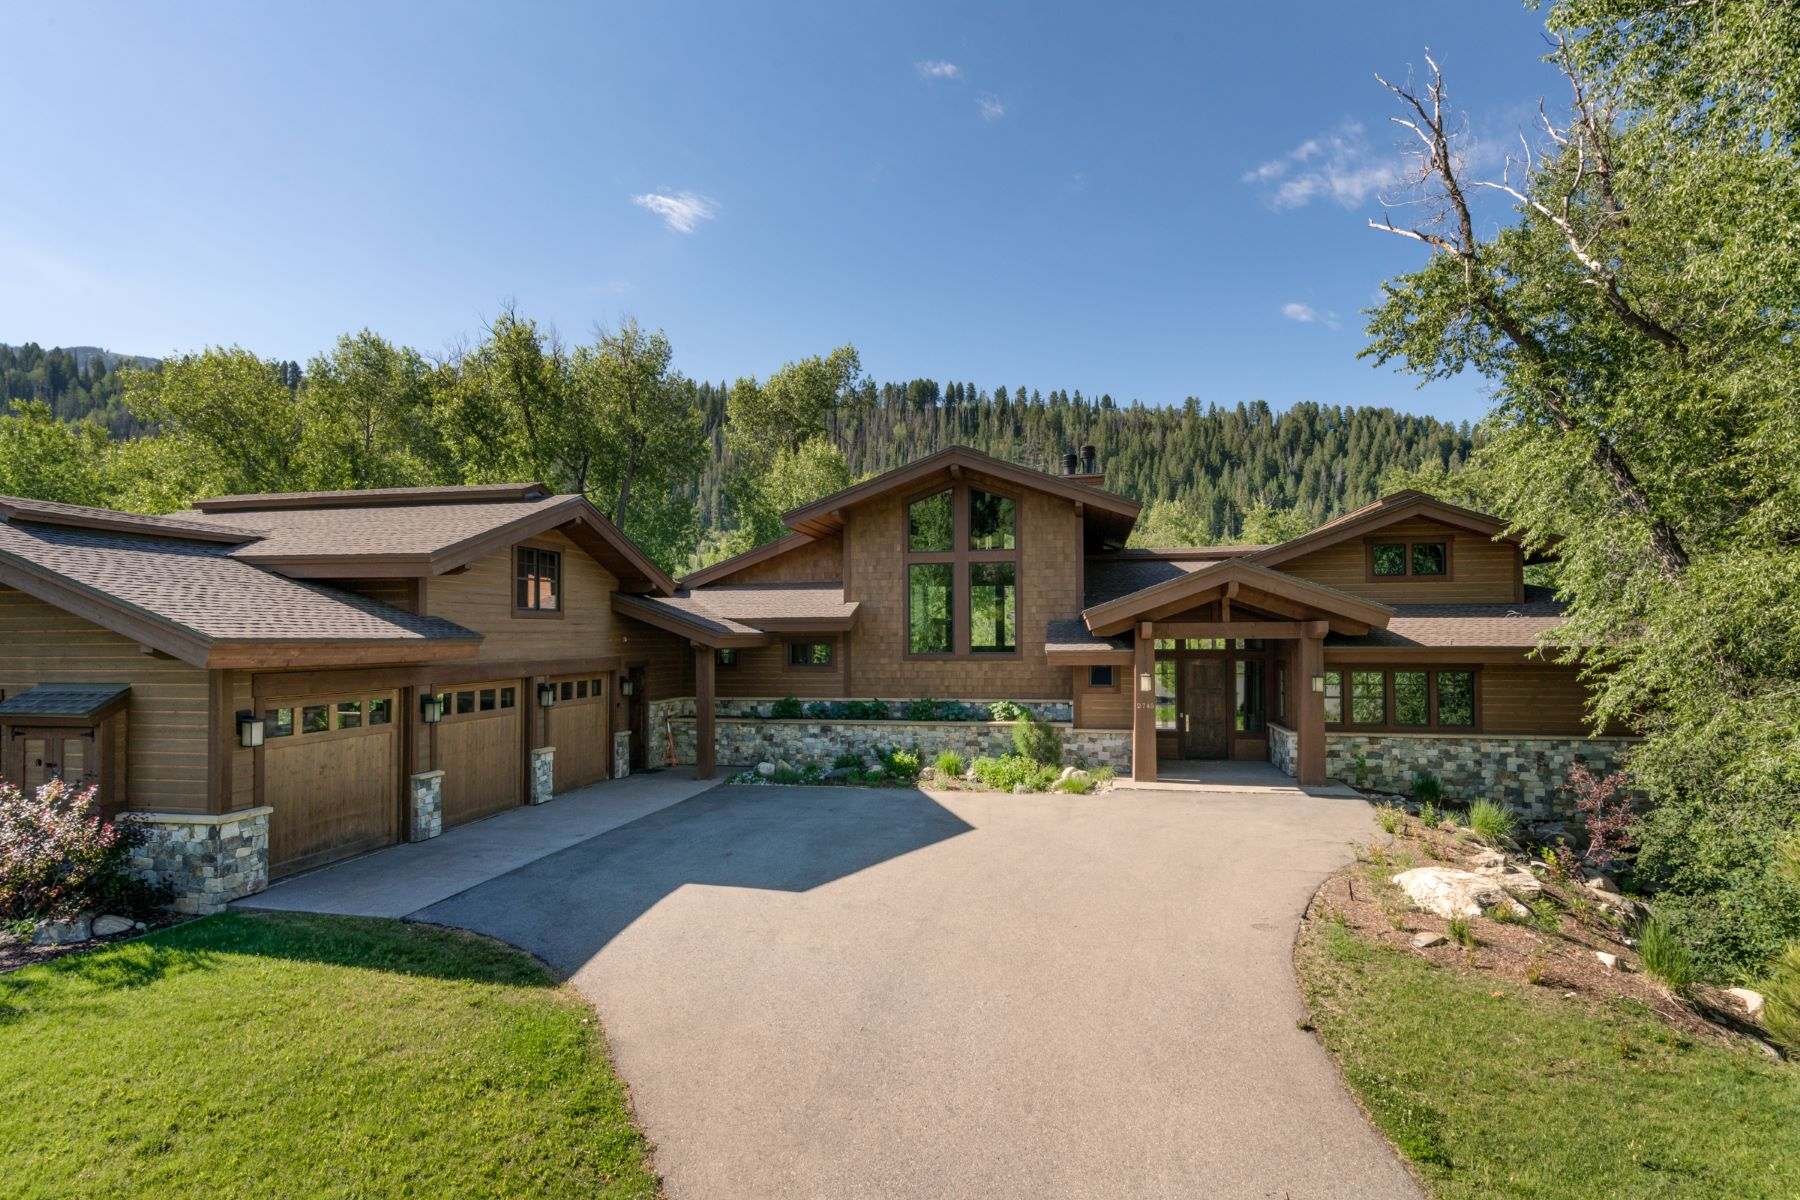 Single Family Home for Sale at Sanctuary on the Creek 2745 Whitewater Lane Steamboat Springs, Colorado 80487 United States